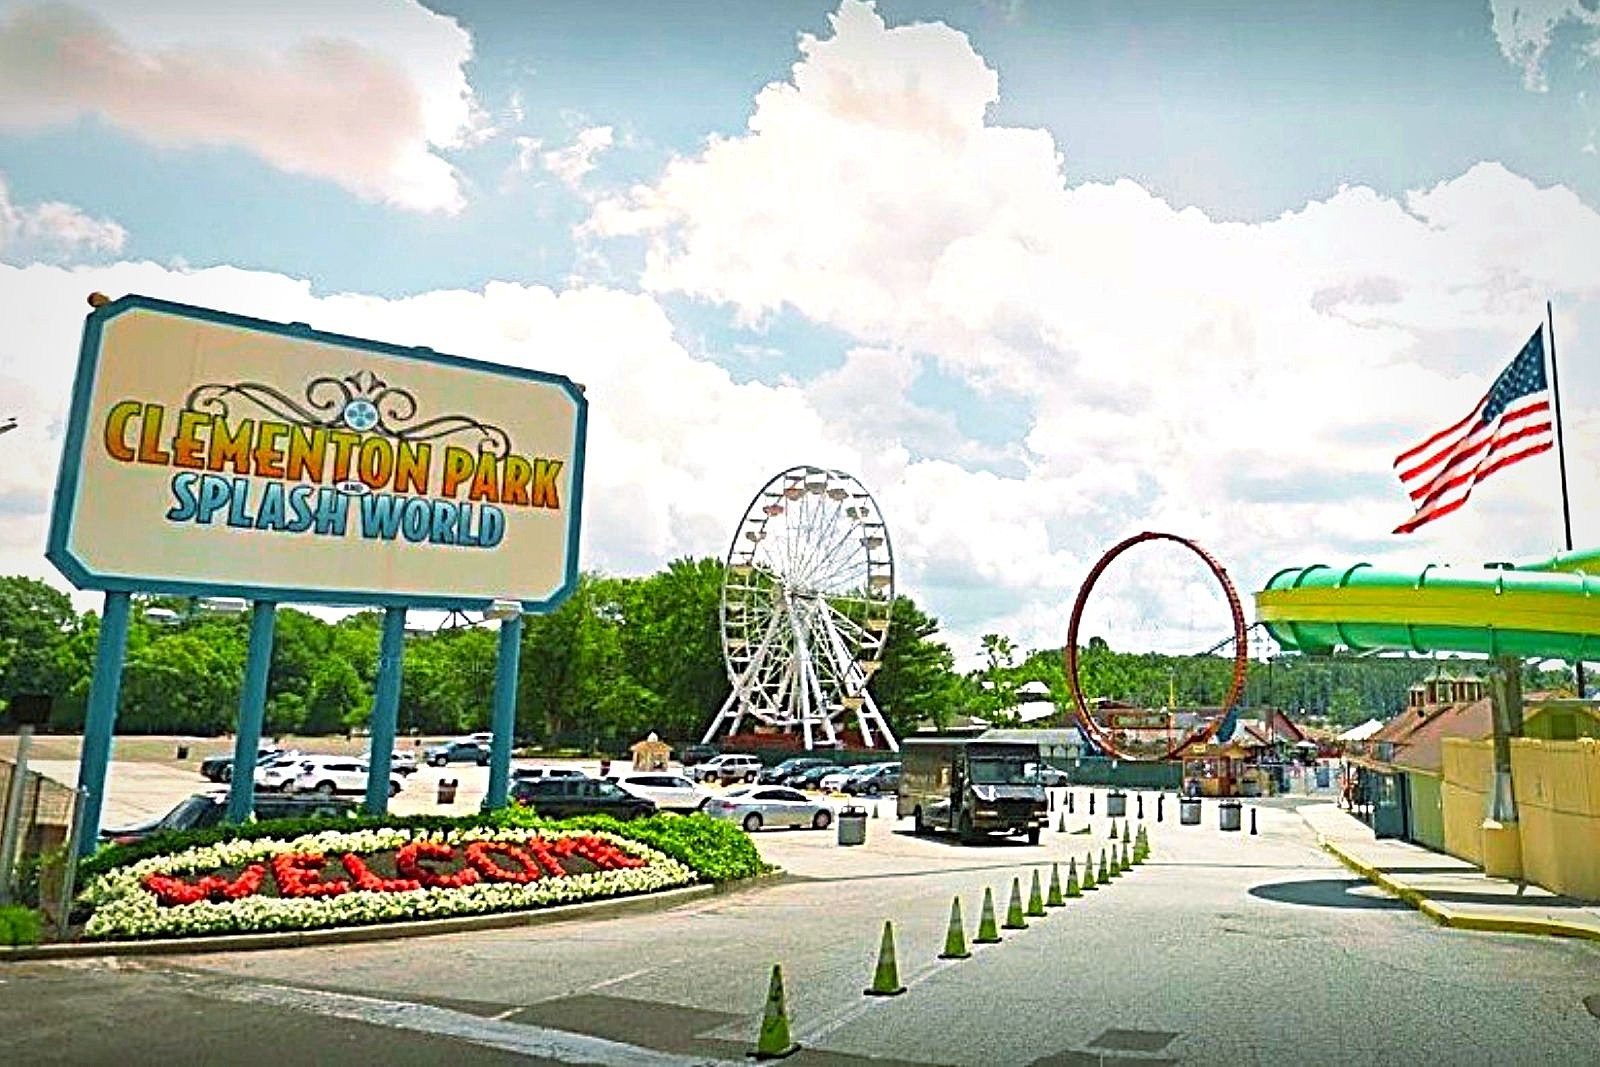 You can make almost $20 an hour at Clementon Park this summer